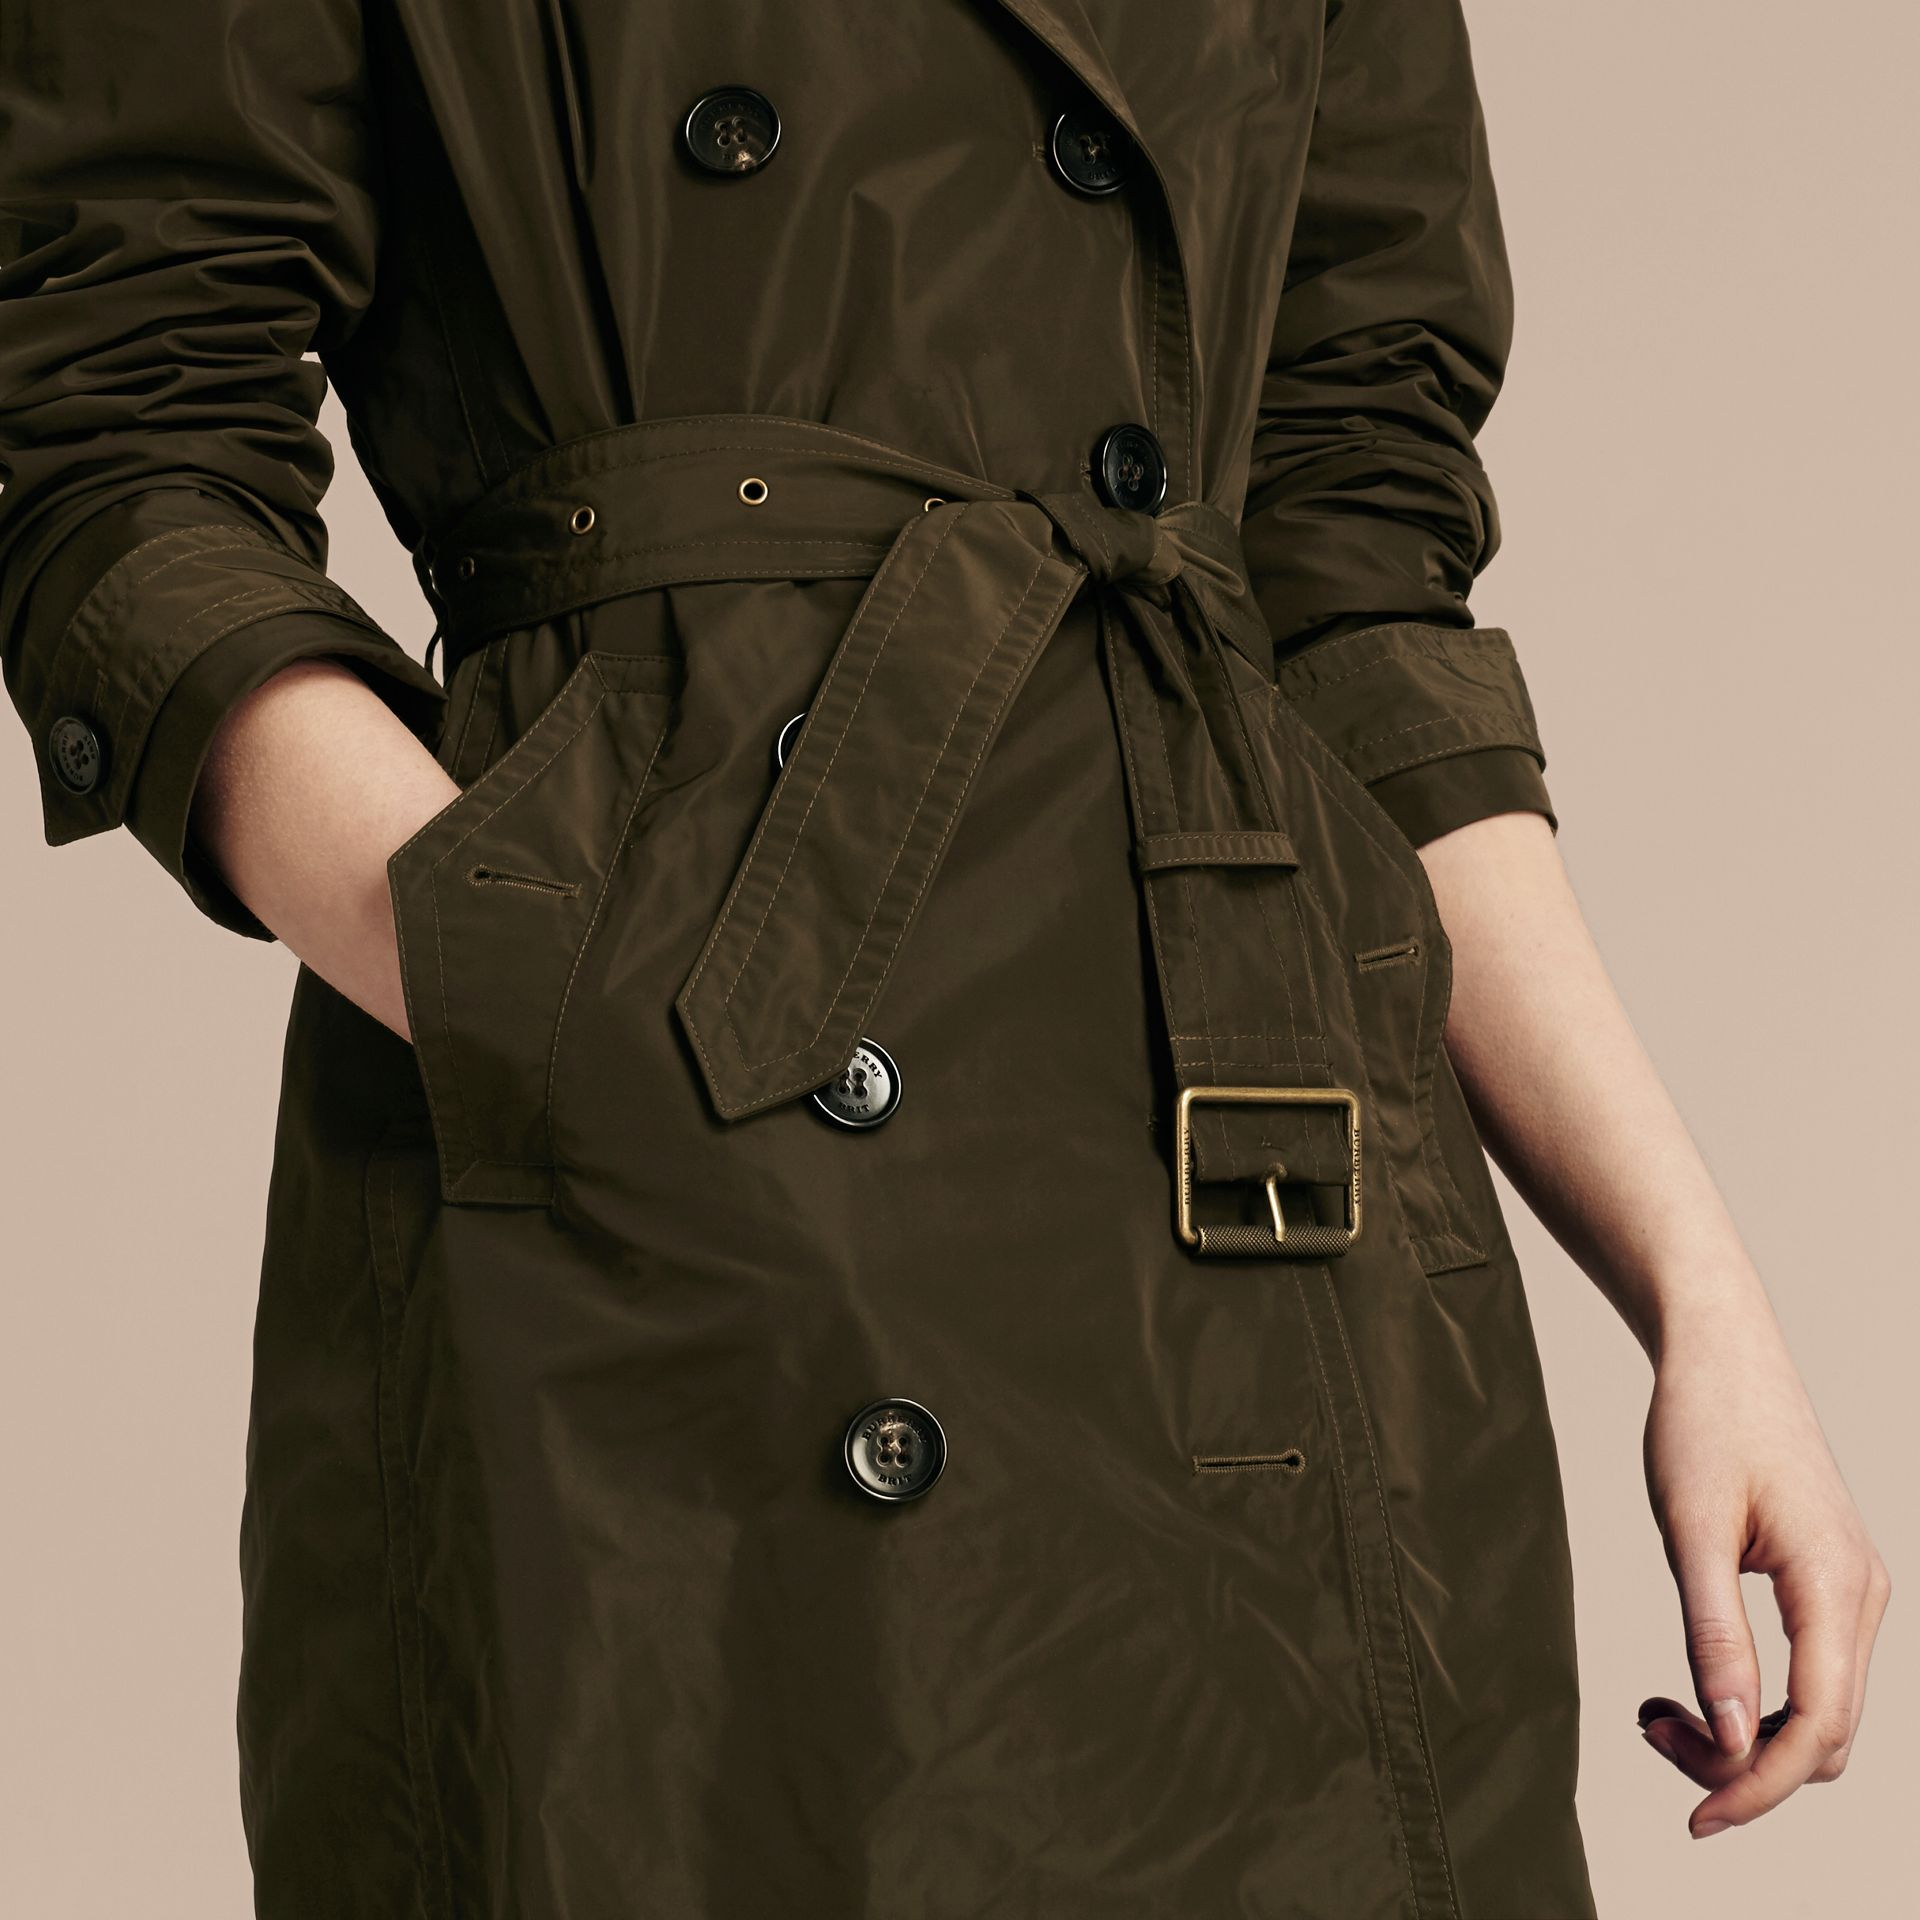 Taffeta Trench Coat with Detachable Hood in Dark Olive - Women | Burberry Canada - gallery image 5